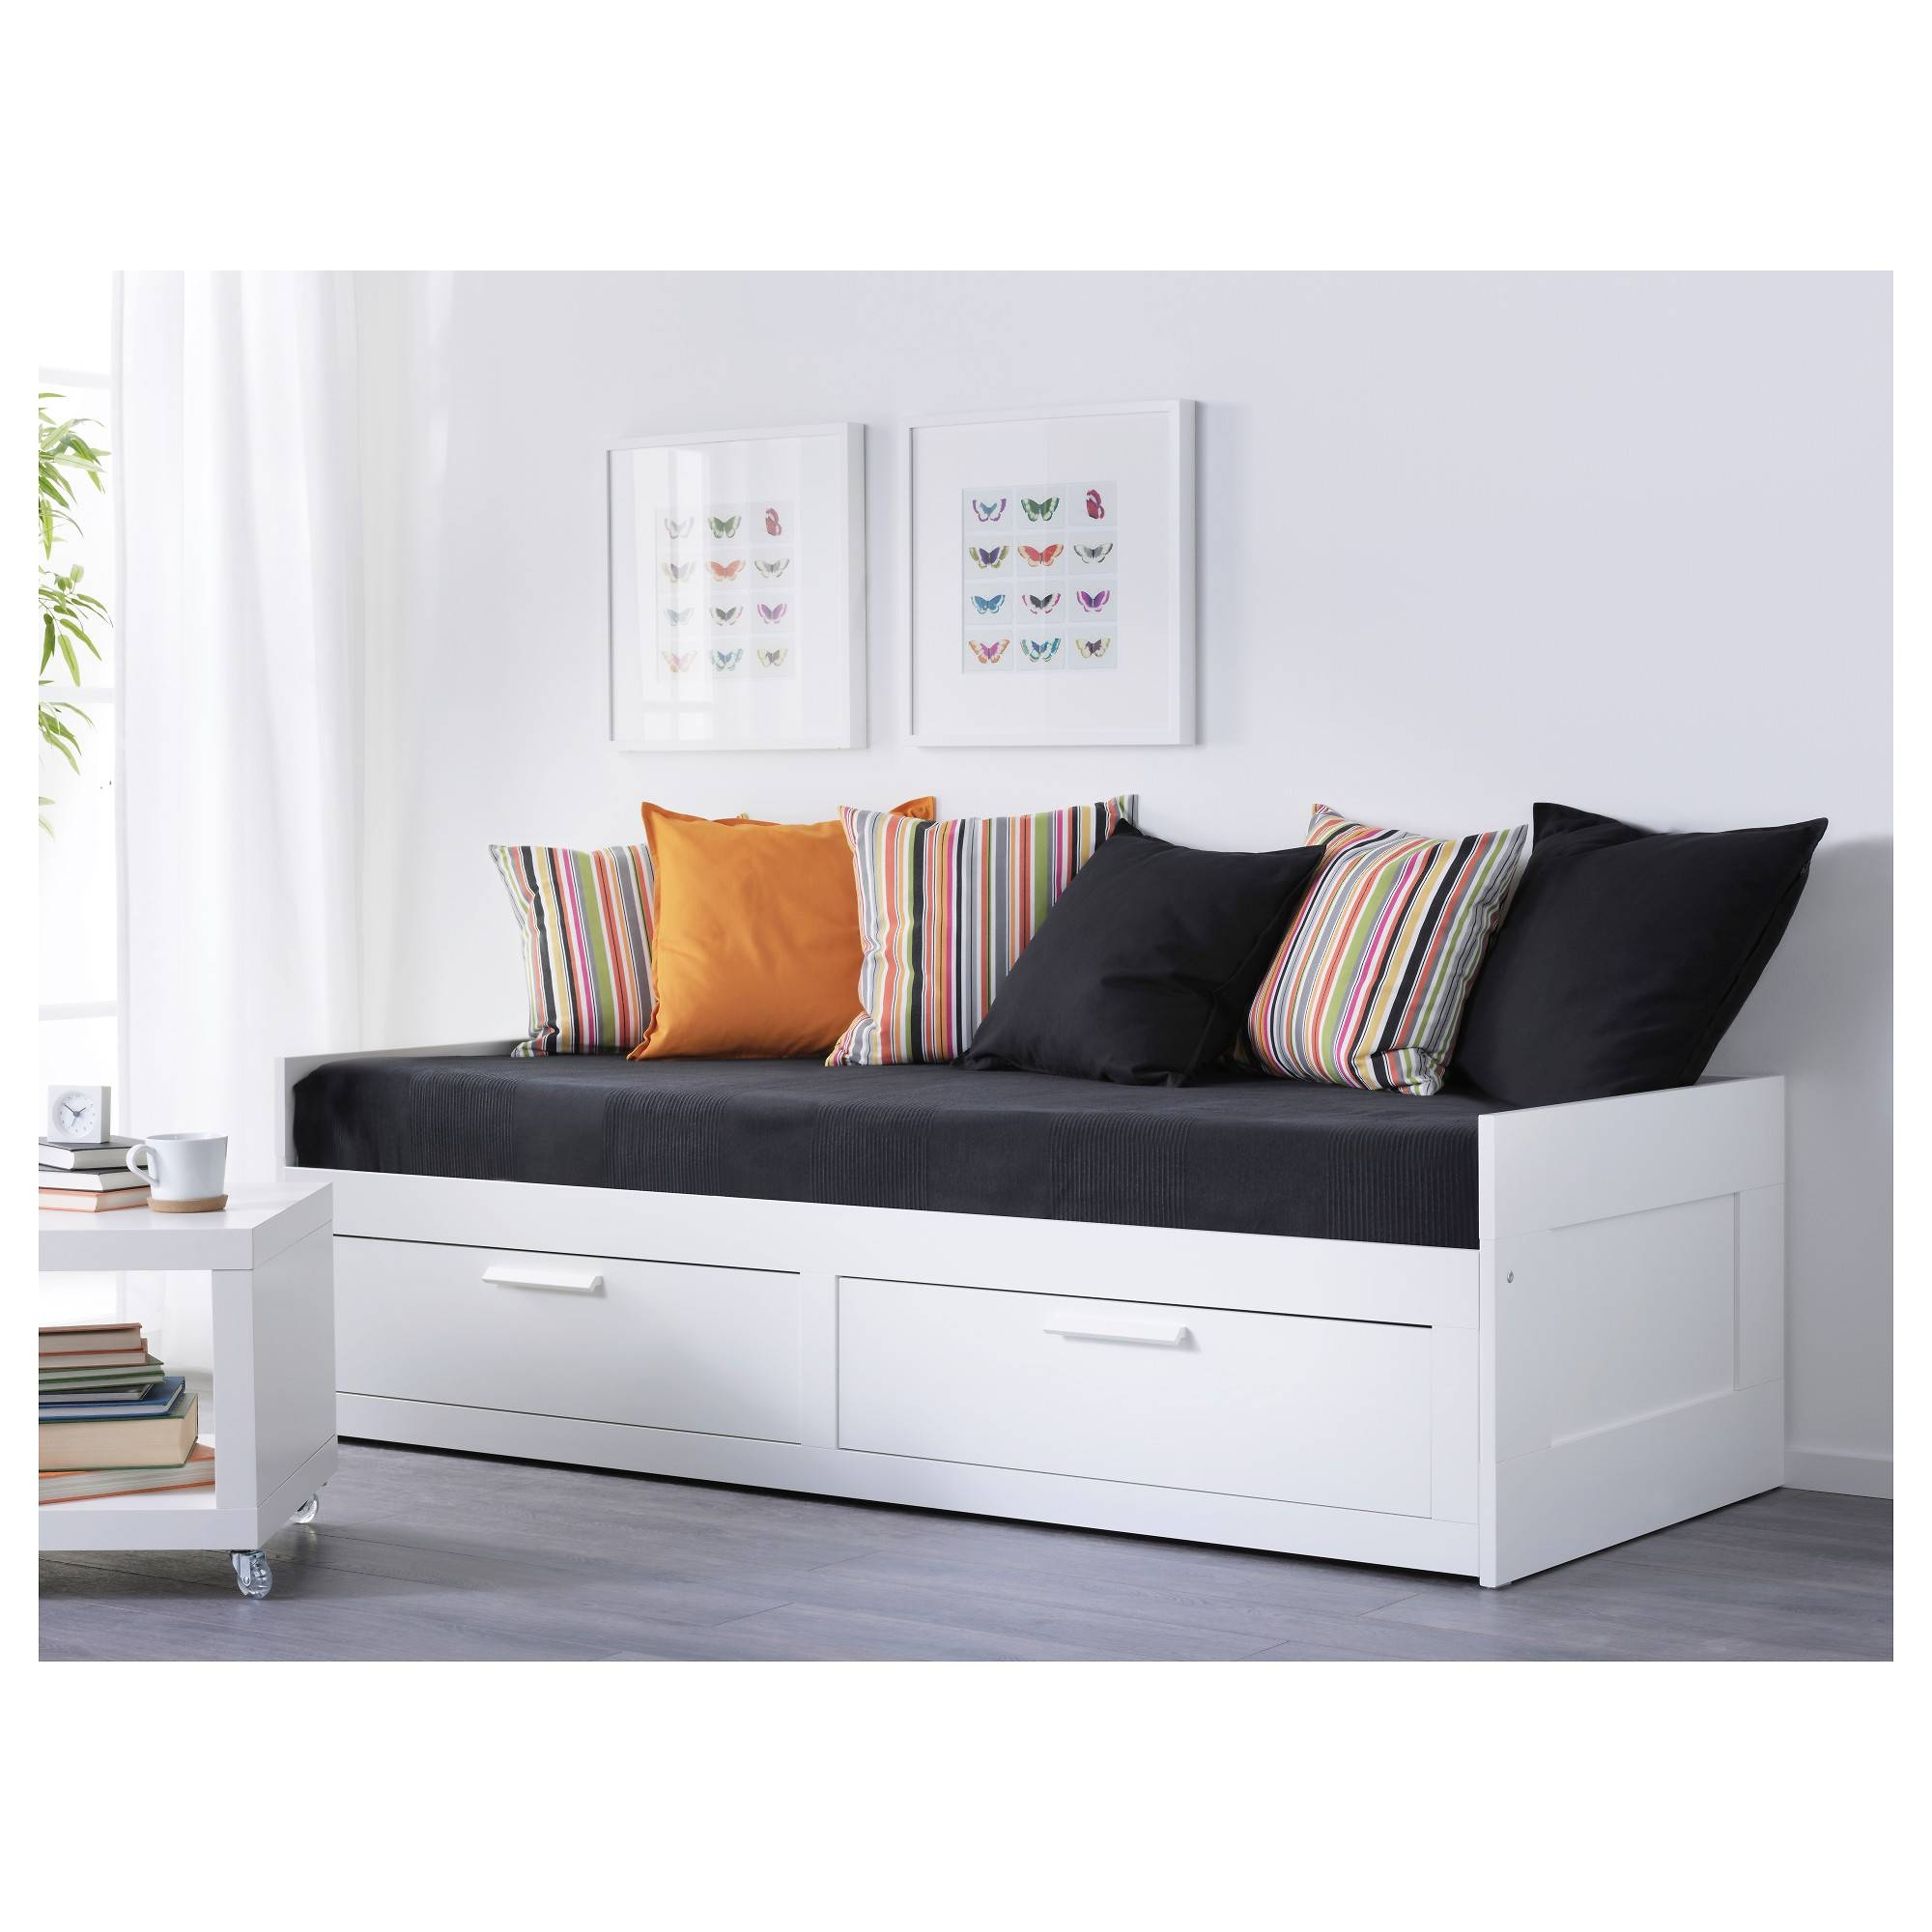 Brimnes Daybed Frame With 2 Drawers – Ikea For Sofa Day Beds (View 7 of 30)